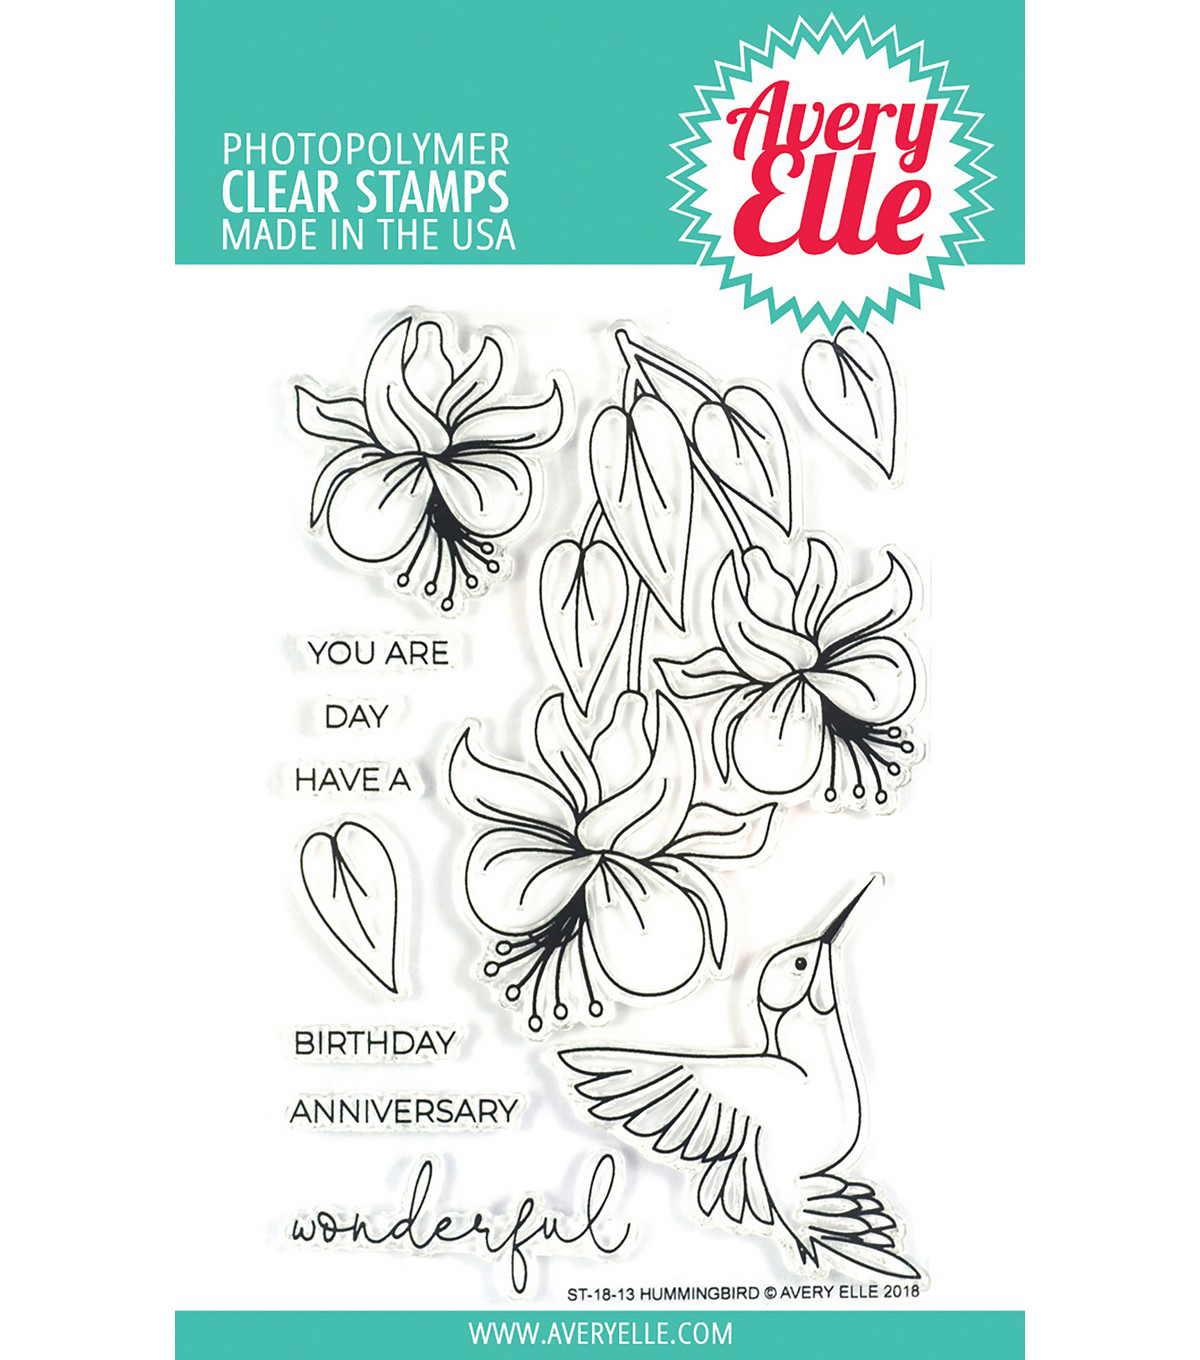 Avery Elle 11 pk Photopolymer Clear Stamps-Hummingbird